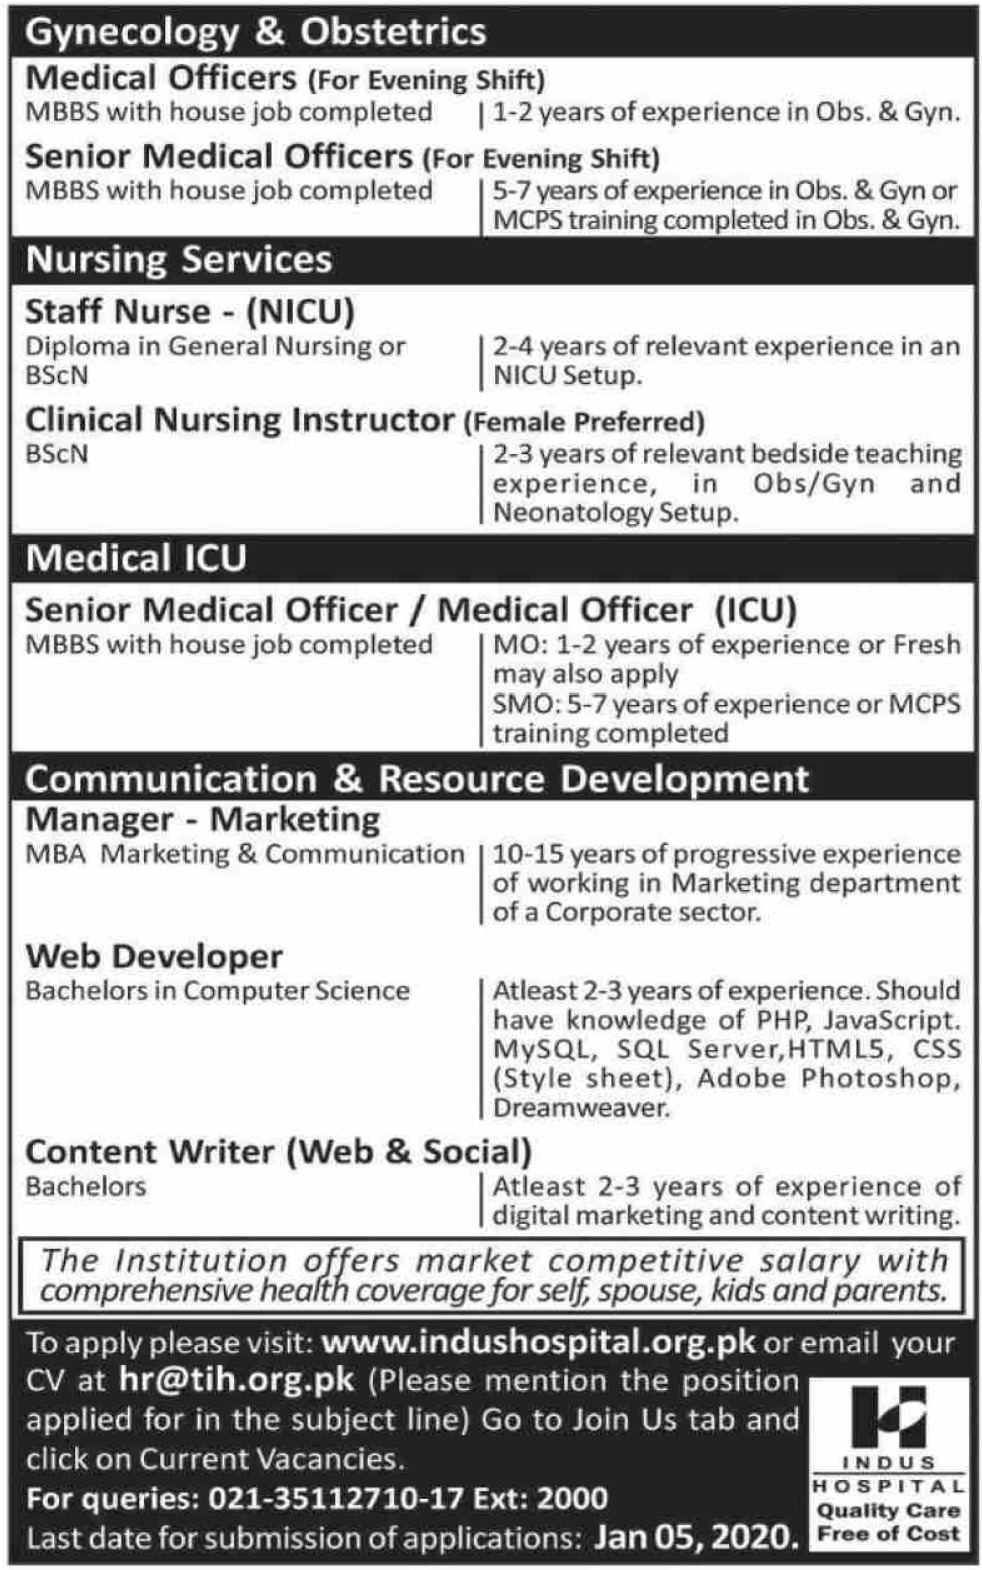 Indus Hospital Karachi Jobs 2019 Latest